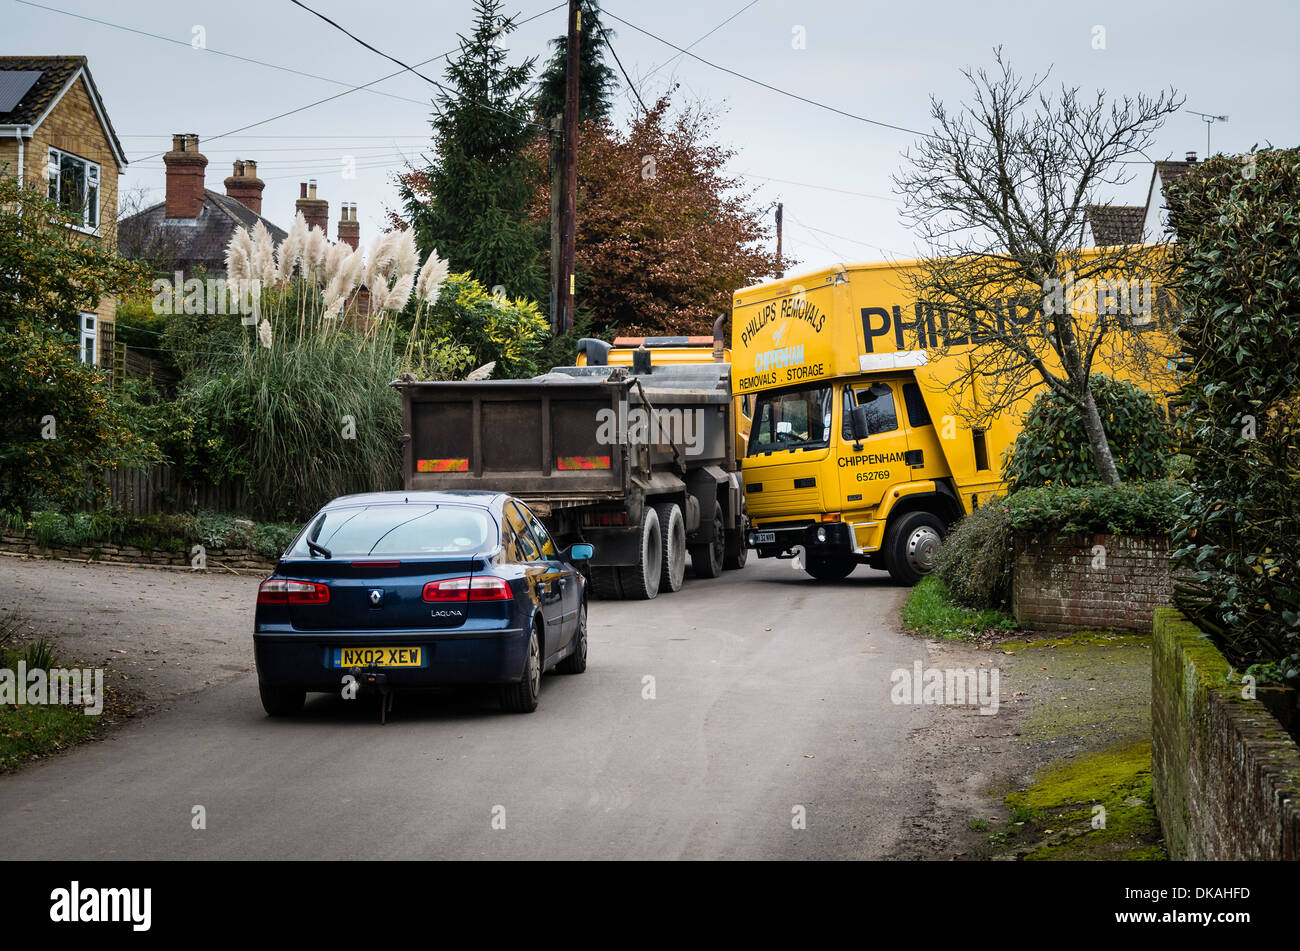 Traffic congestion in a narrow rural lane caused by a removal van at work in small village community - Stock Image